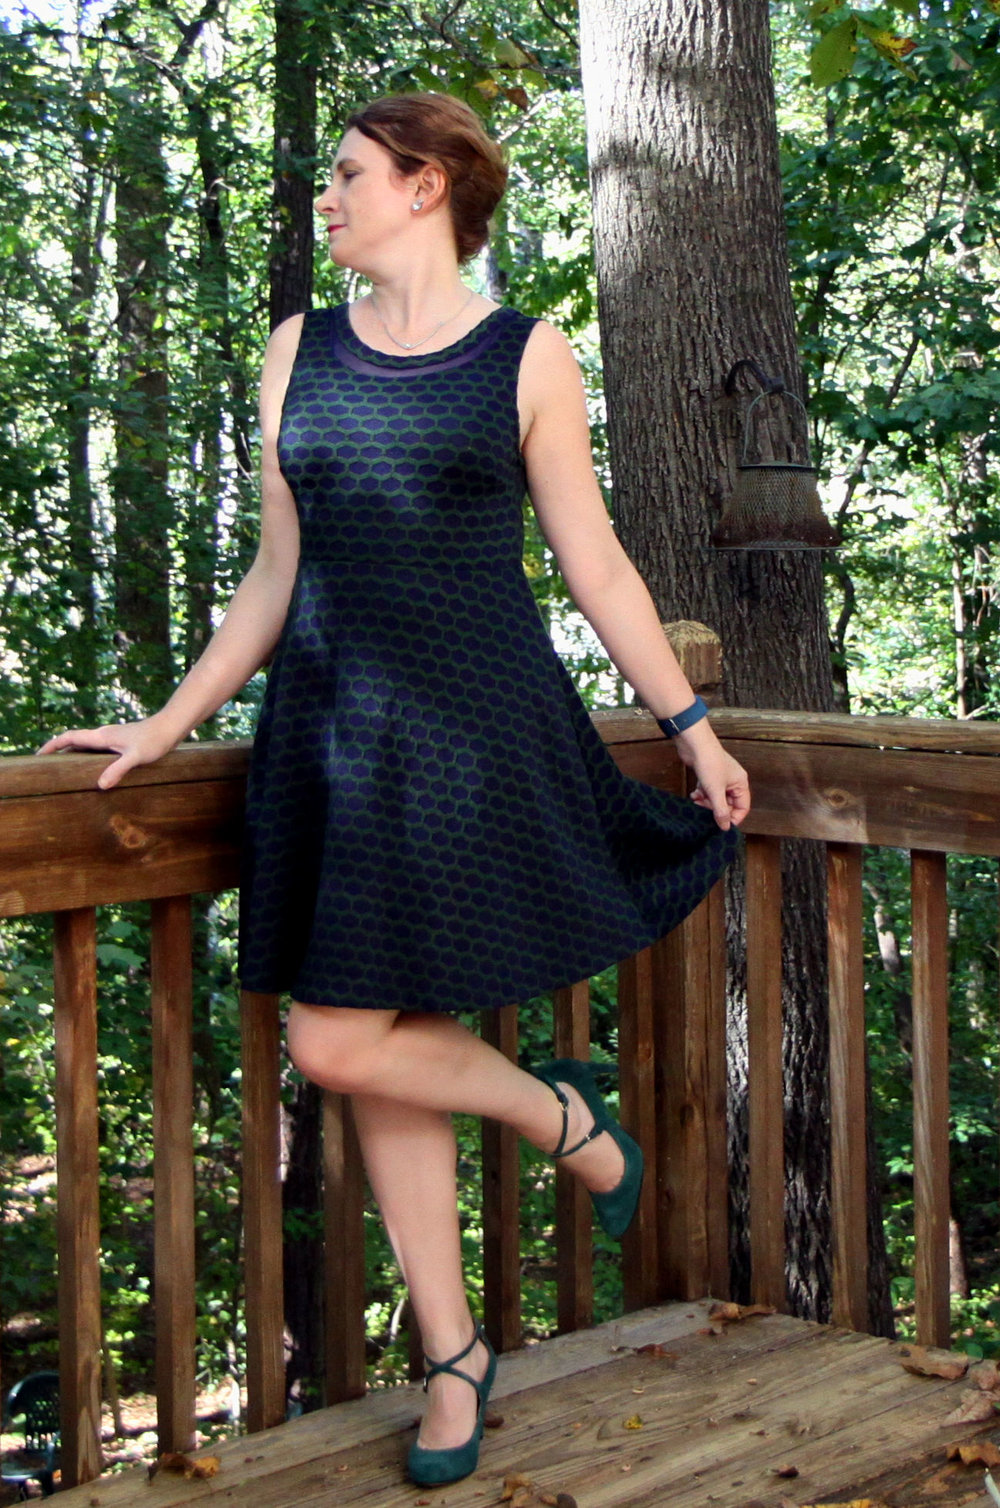 Look at these shoes! And the cute dress! Sadly, I've only worn this outfit once, besides the photo shoot! I have only worn this dress for this photo shoot! Millie textured Knit Dress by Pixley with Hannley Mary Jane Strappy Pump by Nine West, both from Stitch Fix.